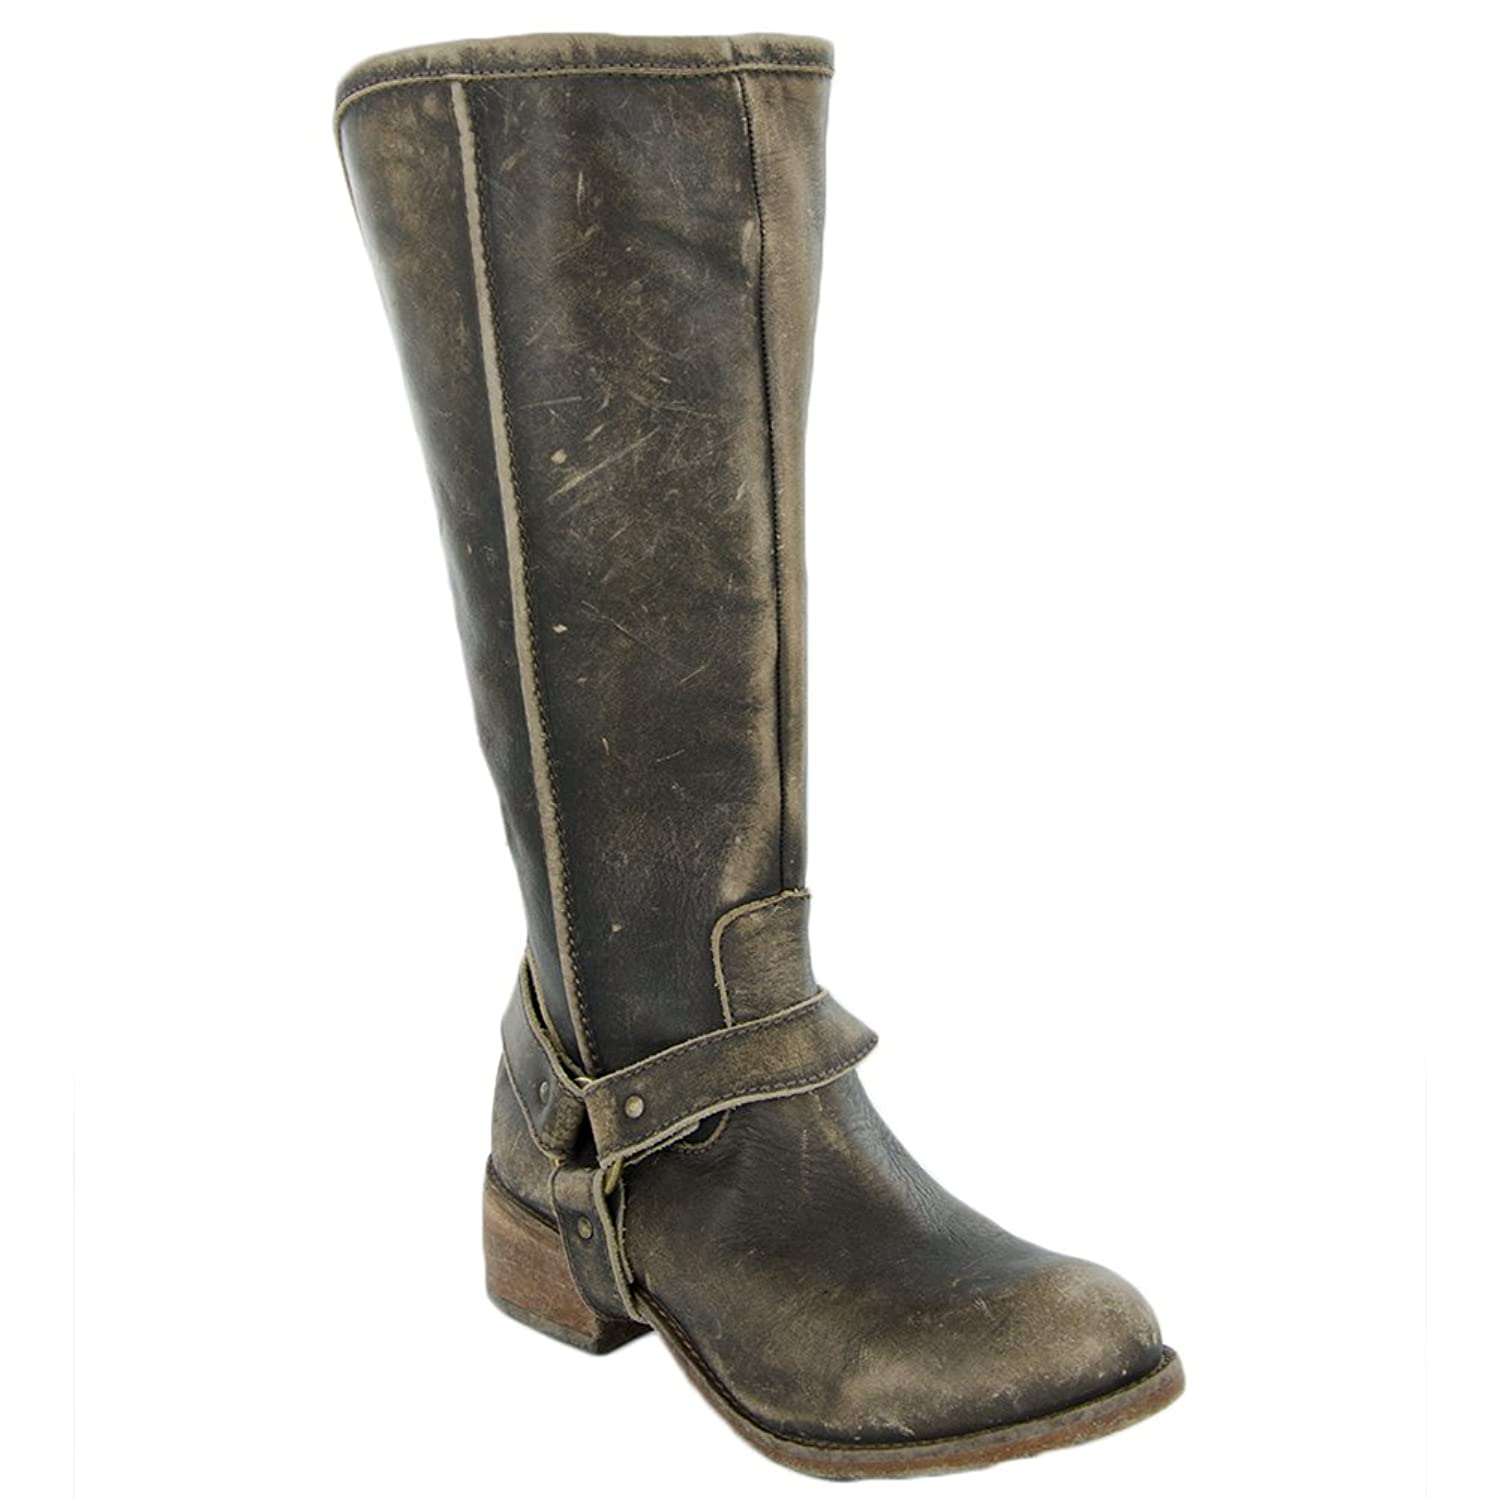 CORRAL P5100 Distressed Brown Tall Harness Boots with Zip Back B012T2R9LY 7.5 B(M) US